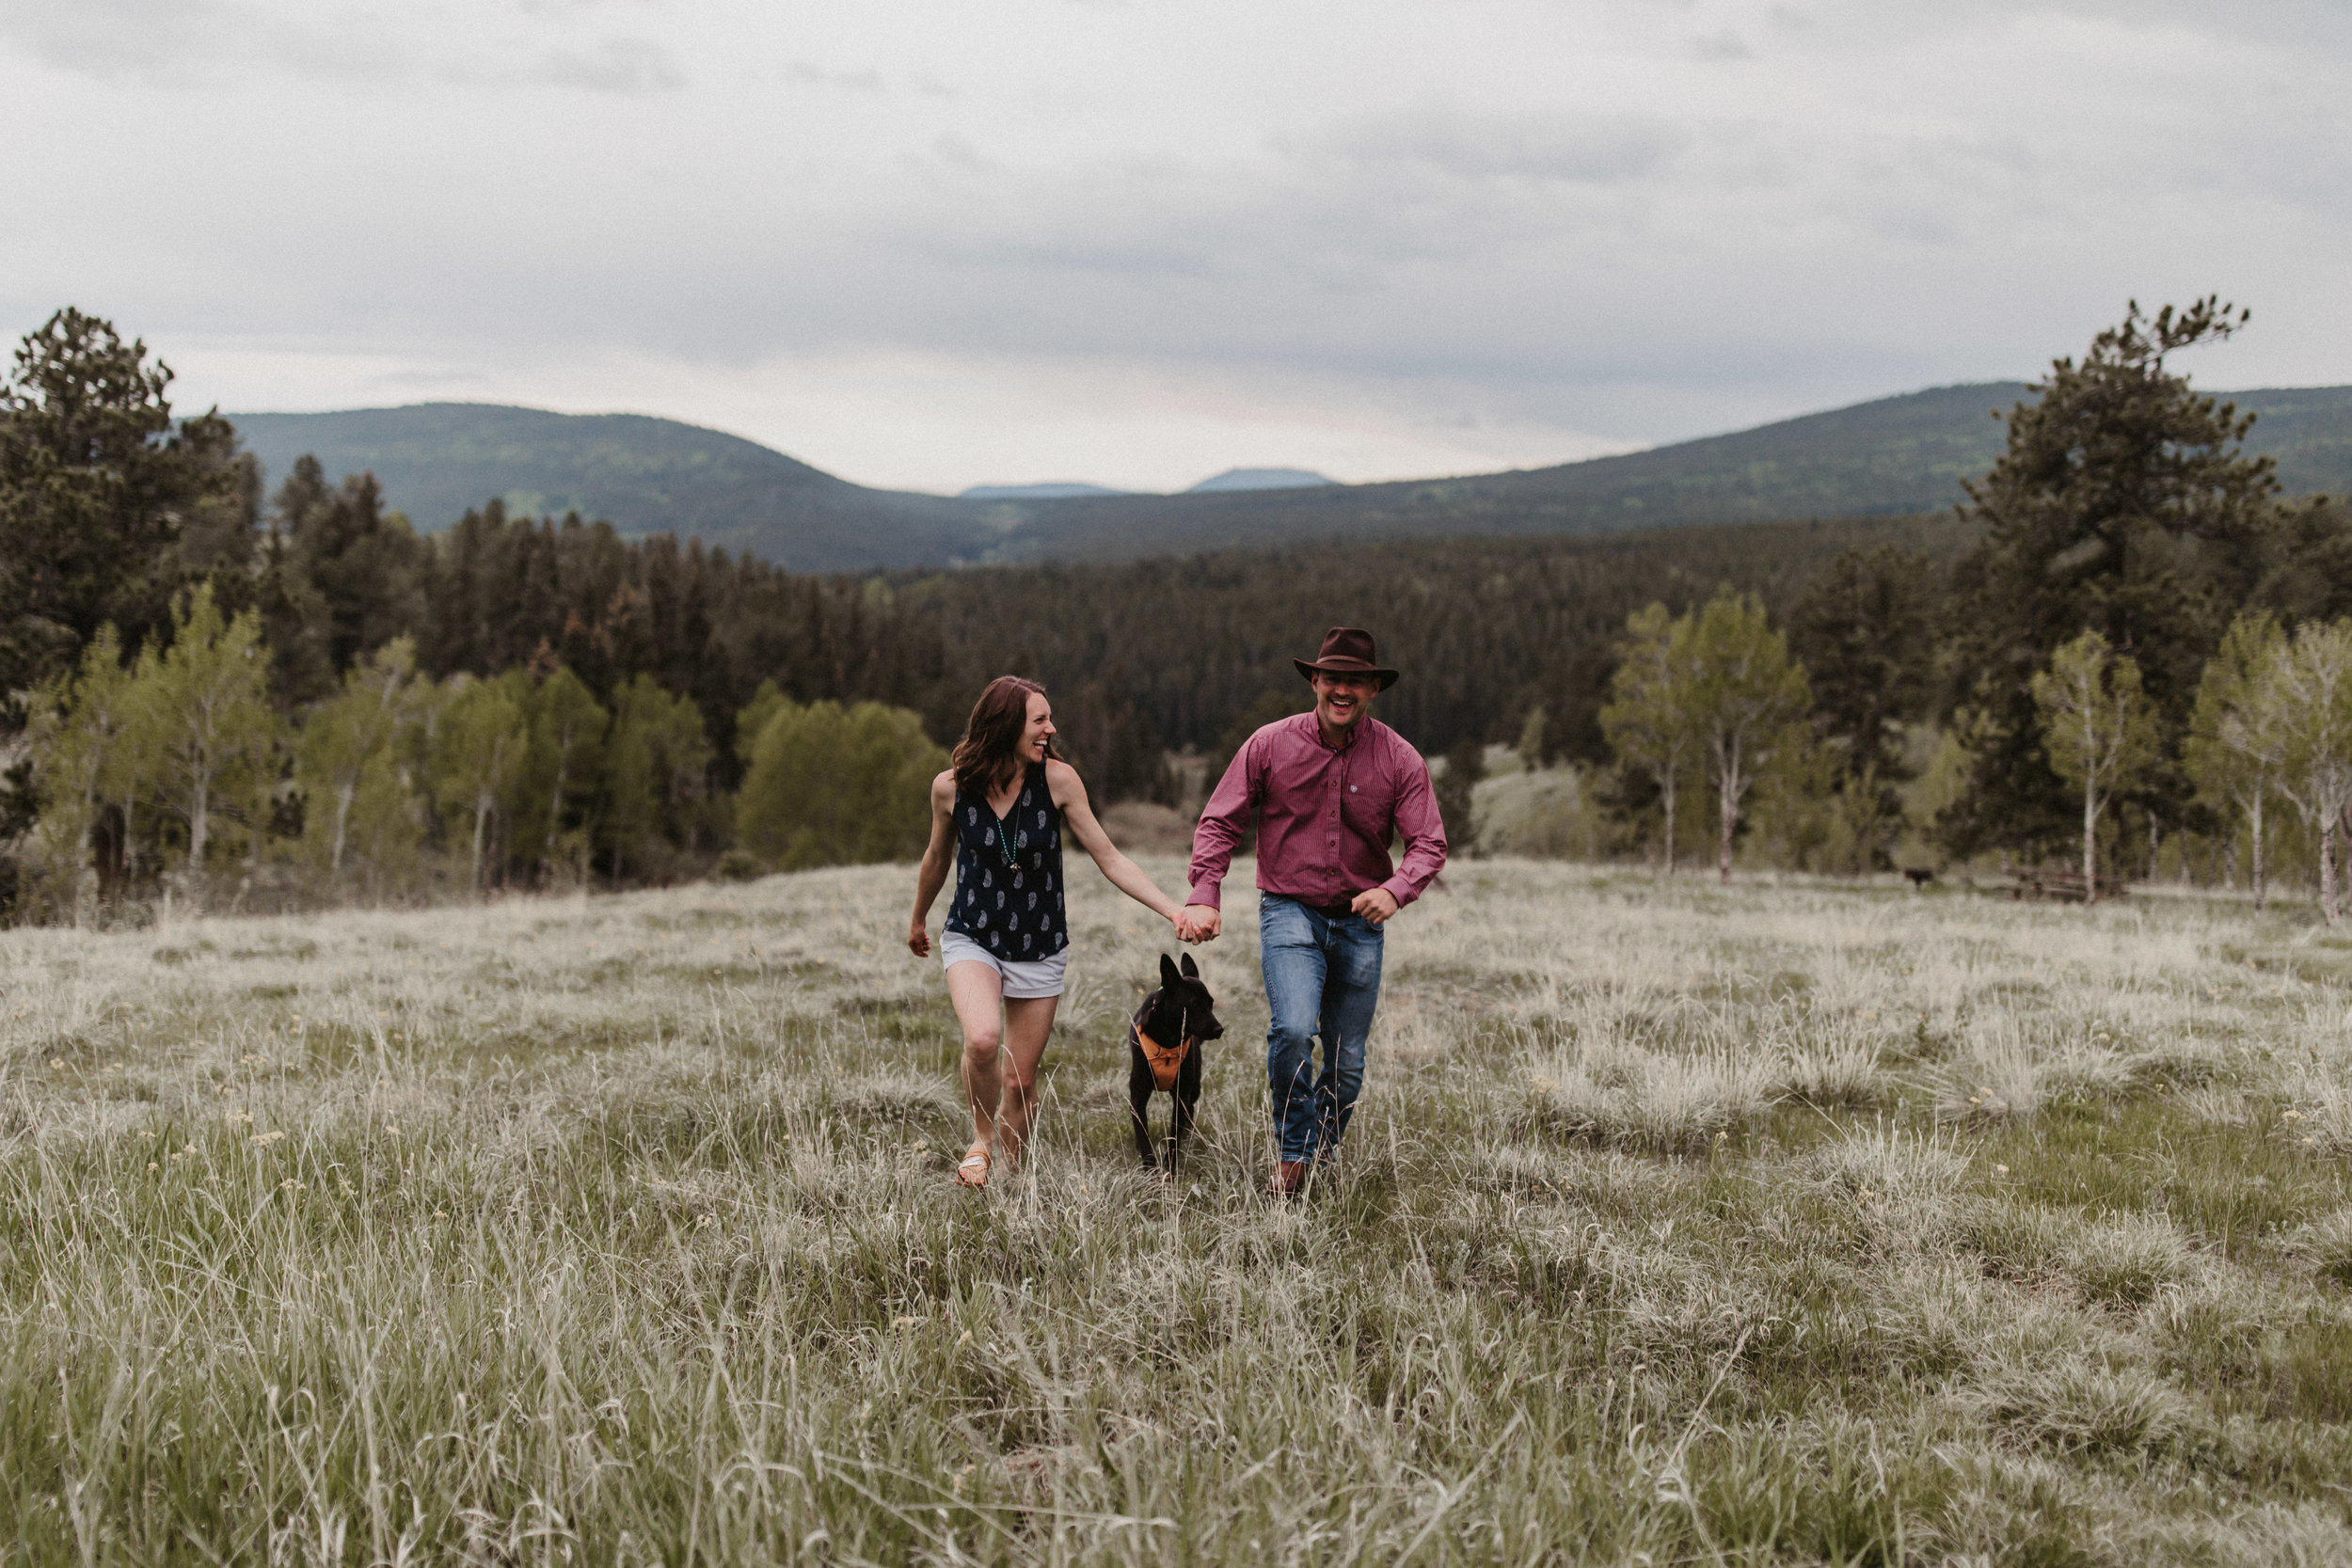 Abby_and_Scott_Engagement_Shoot_Golden_Gate_Canyon_State_Park0323.jpg